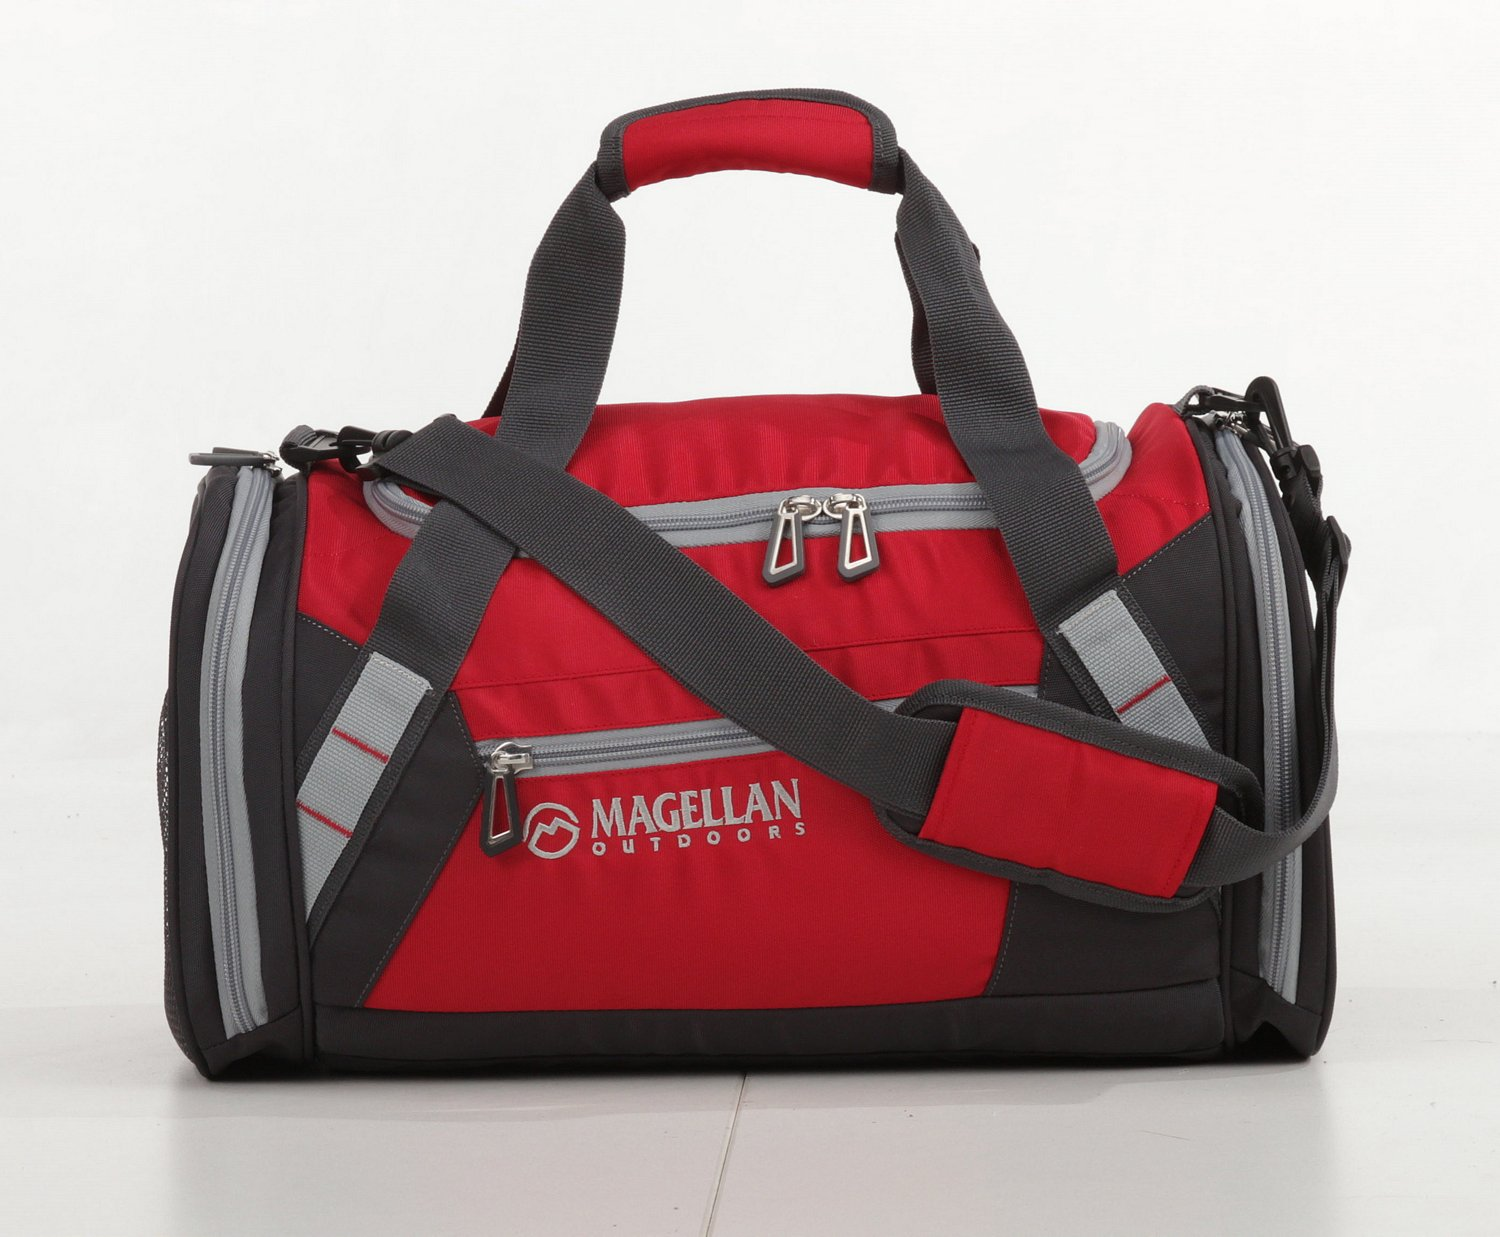 0403e8bd11ff46 Display product reviews for Magellan Outdoors 18 in Duffel Bag